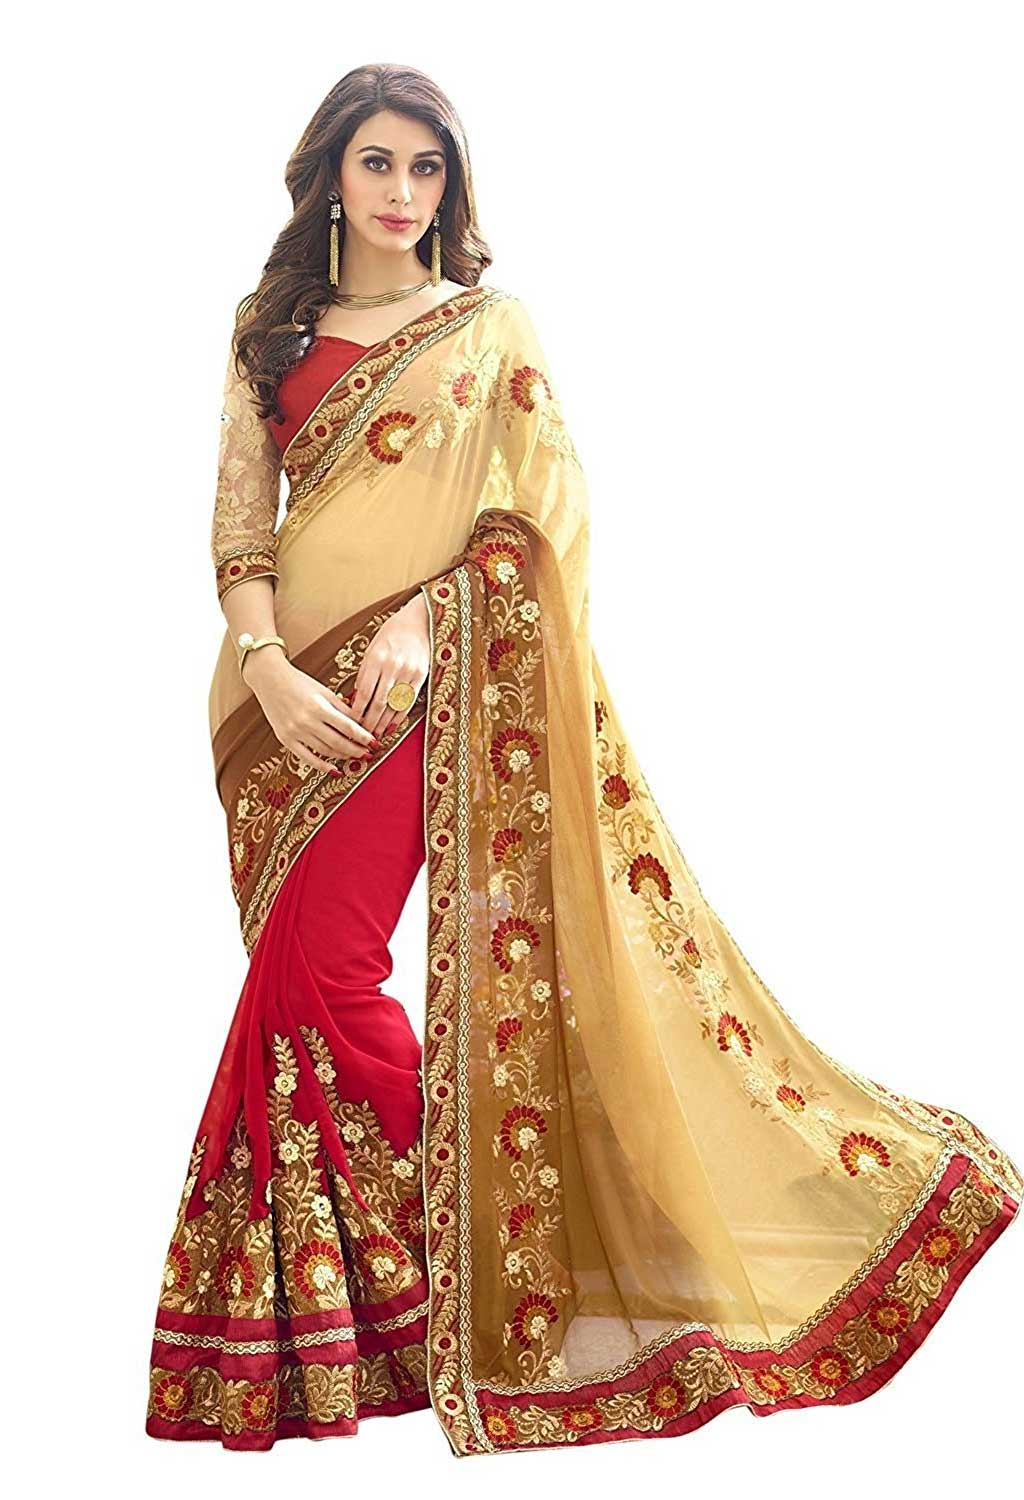 Panchratna Women's Embroidered Biege And Red Half And Half Georgette Saree With Blouse Material